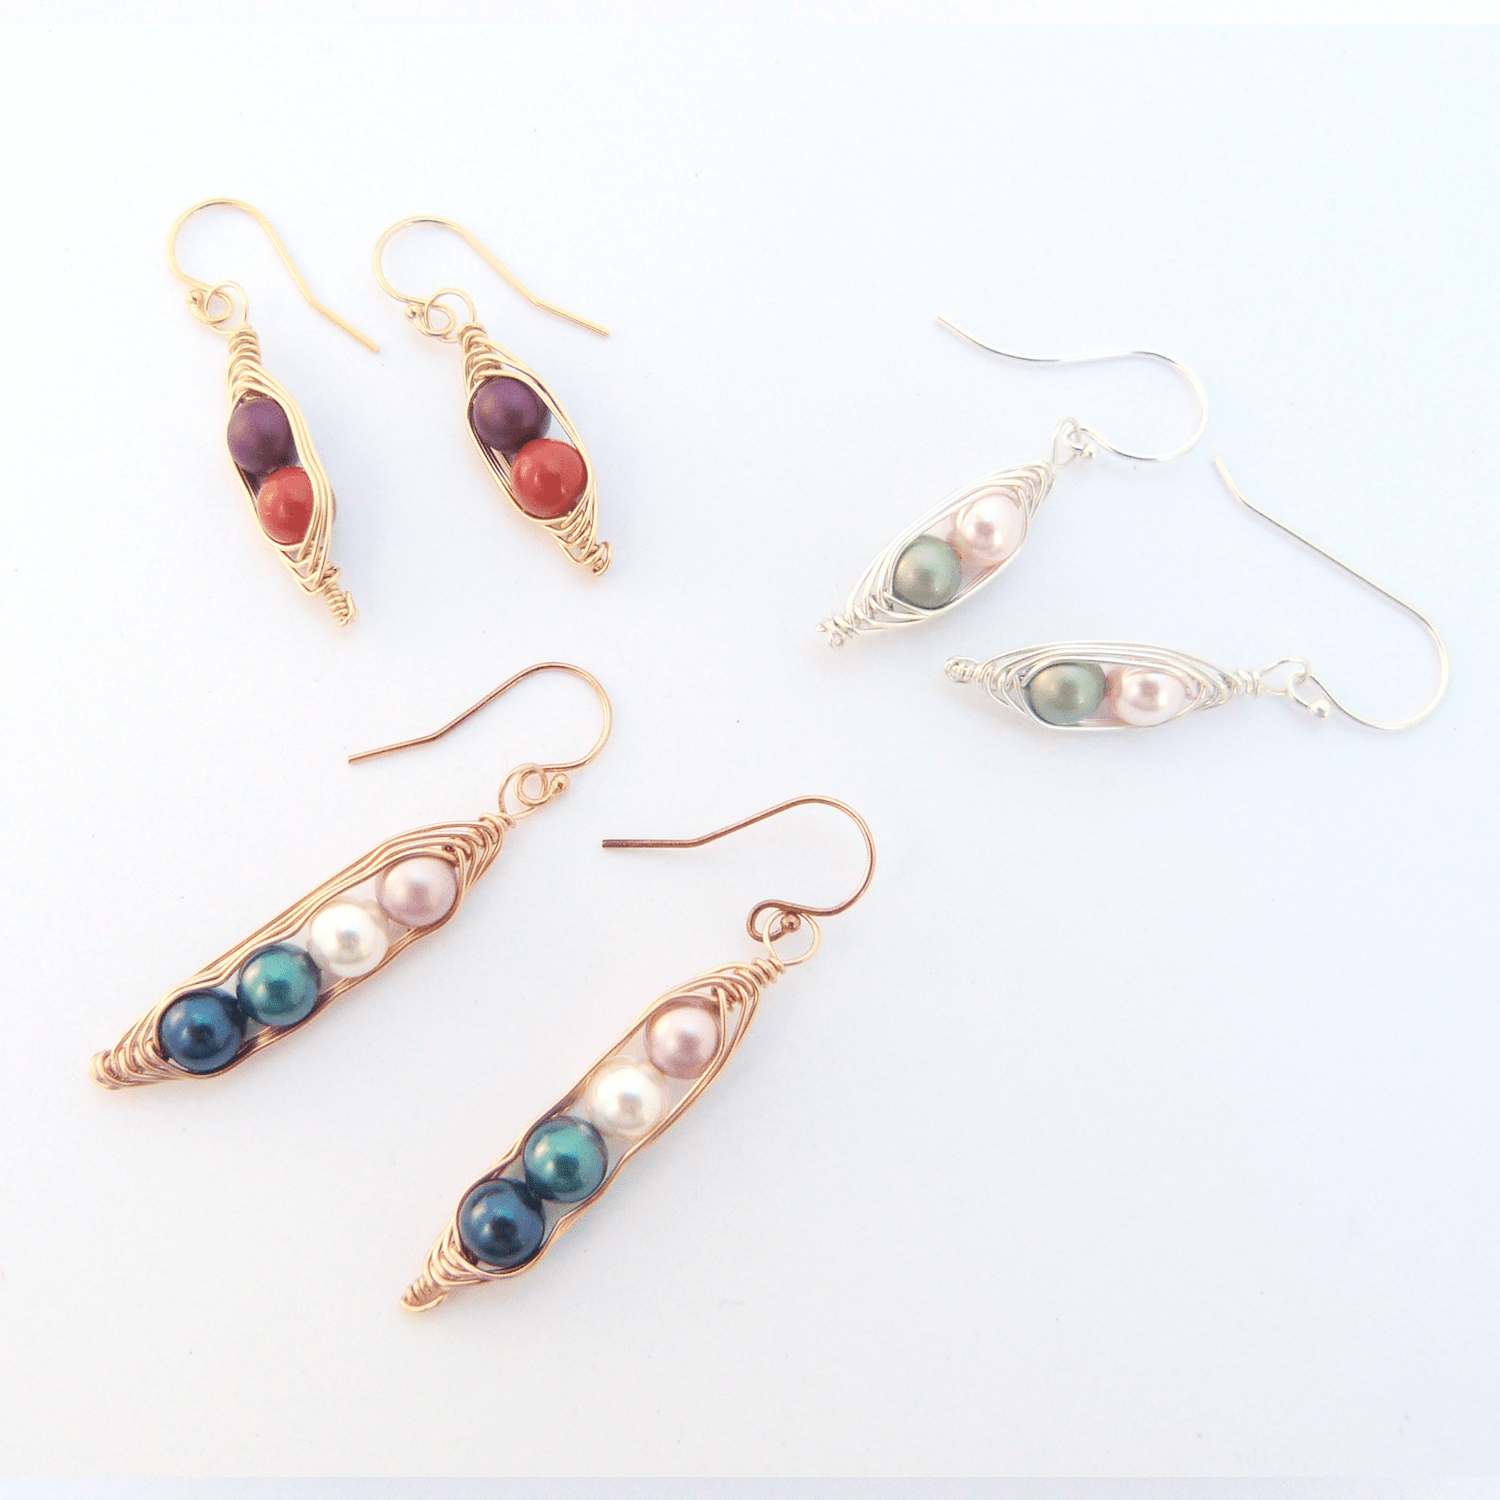 Personalized Peas In A Pod Earrings - Jennifer Stone Co.